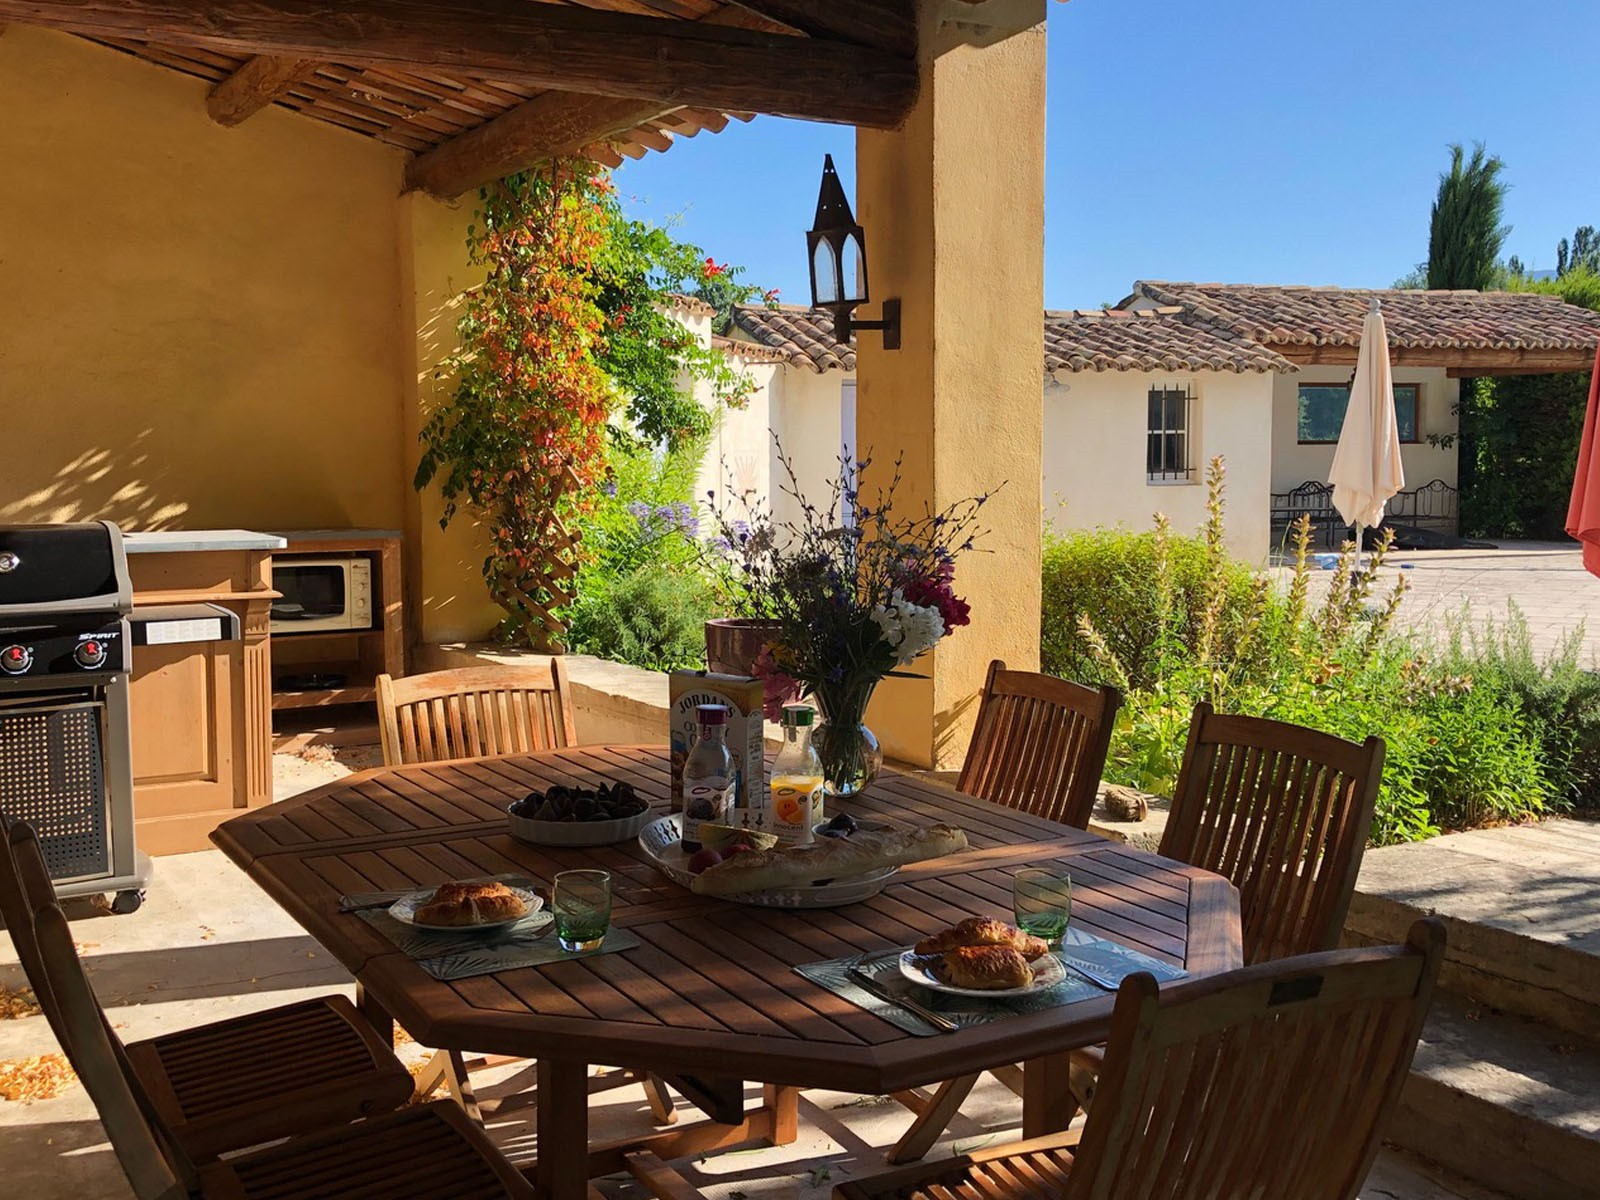 exclusive_rentals_provence_luxury_vacation_homes_villa_south_of_france_14